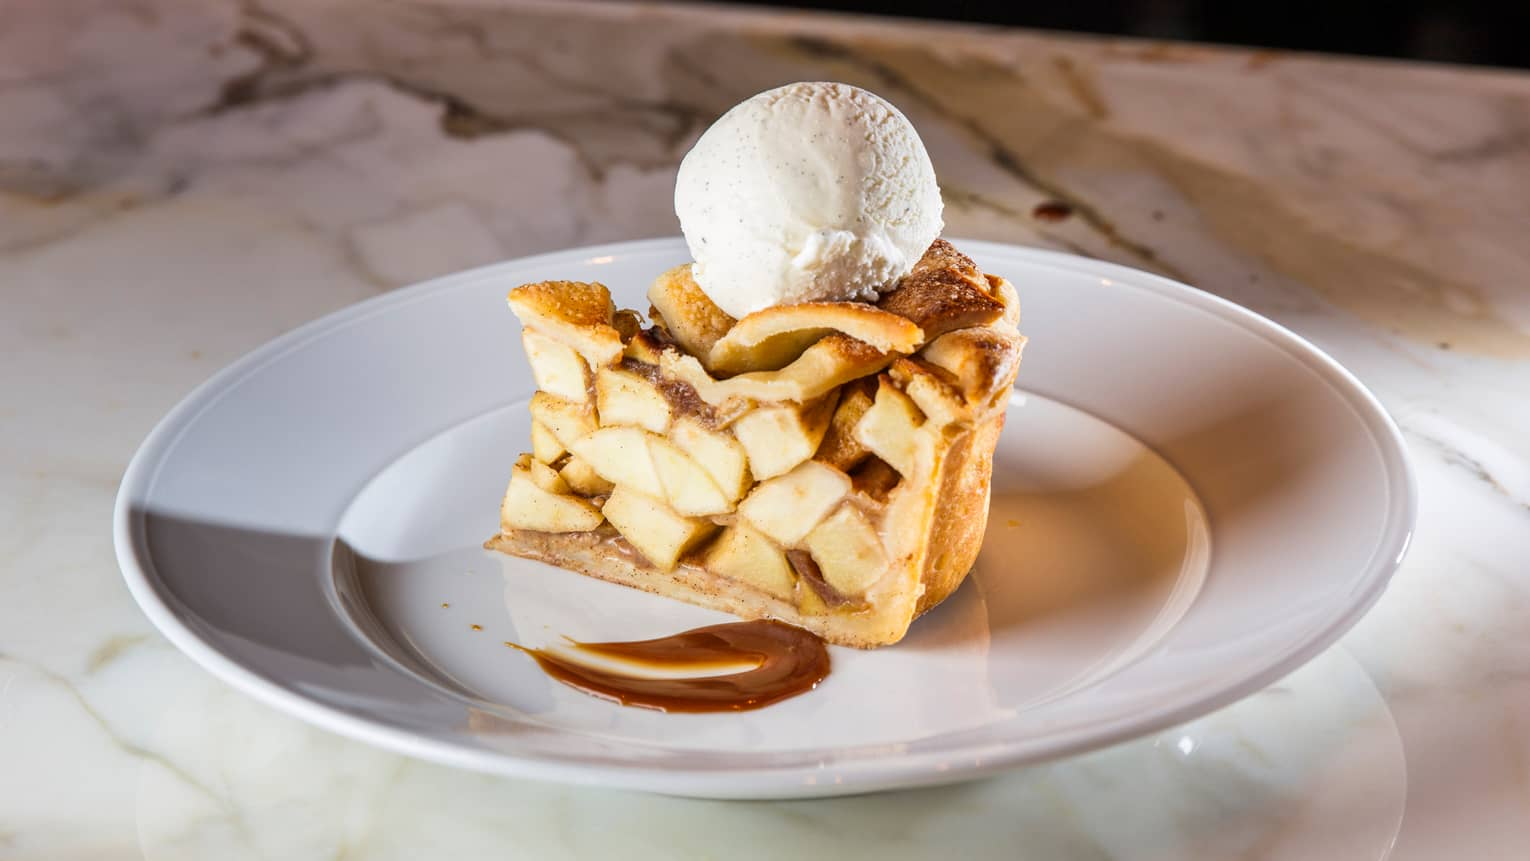 Slice of Double Crusted Apple Pie with large scoop of vanilla ice cream on white plate on white marble counter